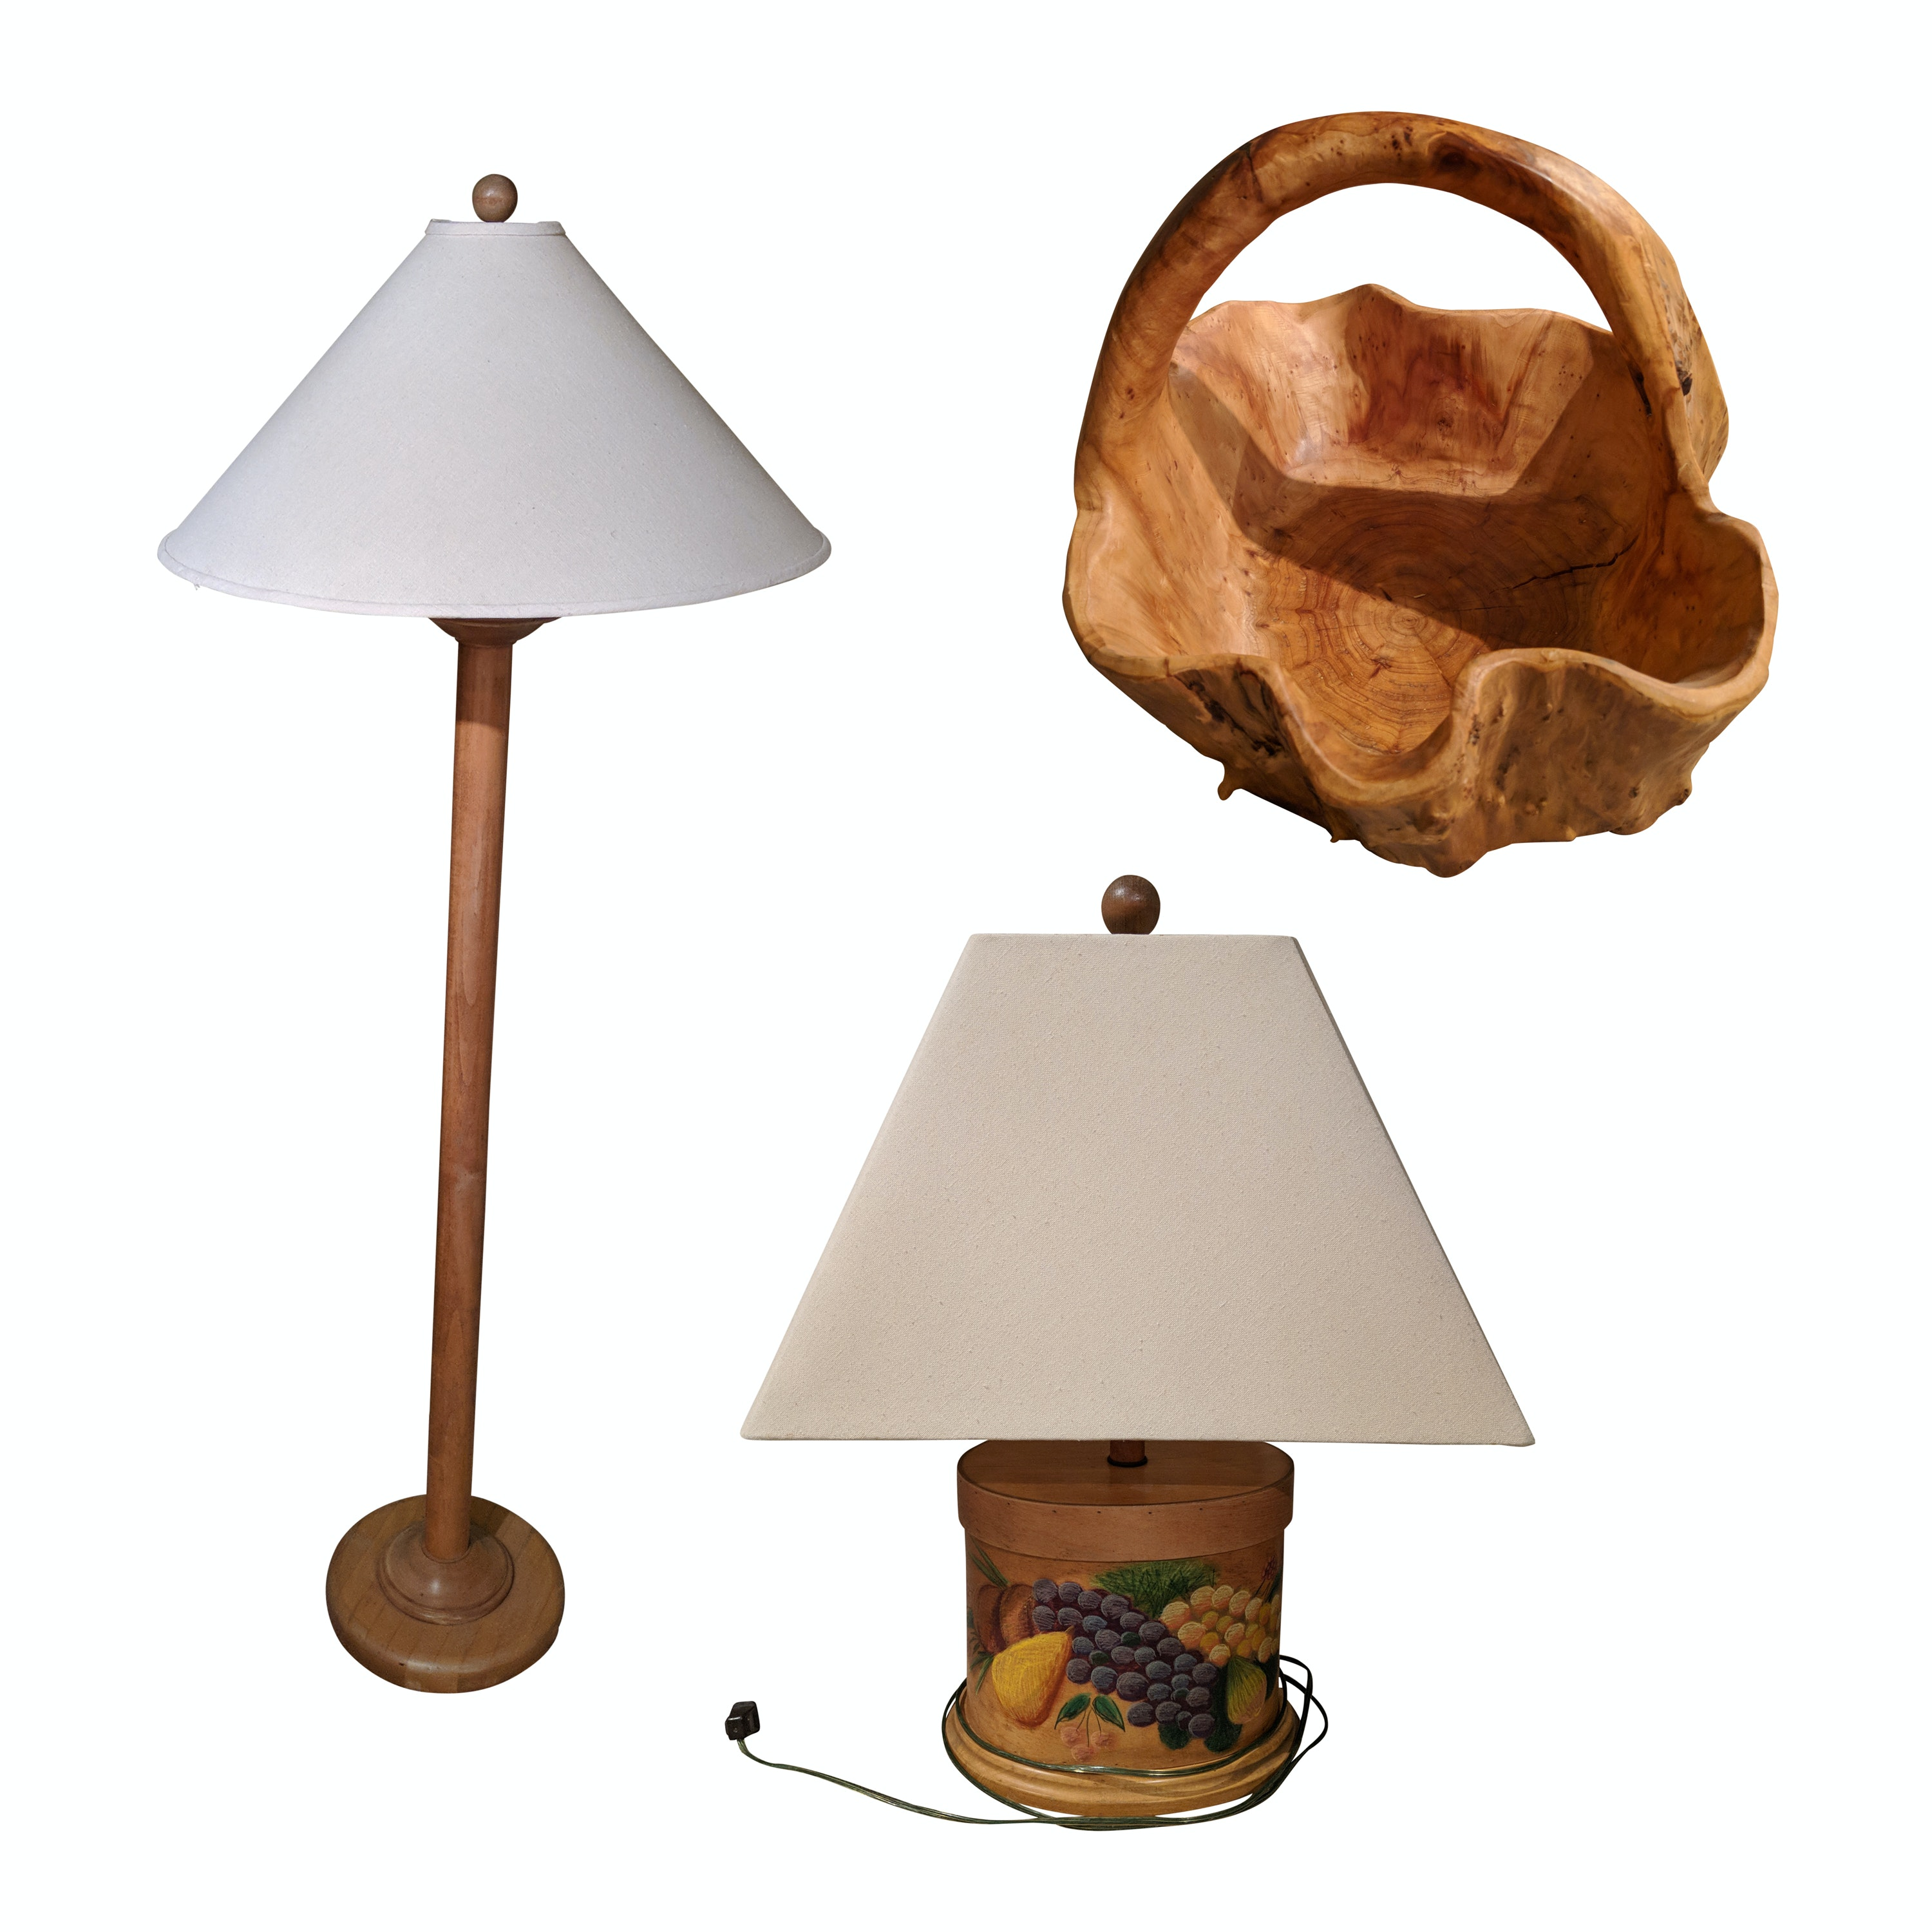 Stenciled Table Lamp, Wooden Floor Lamp and Burl Wood Basket